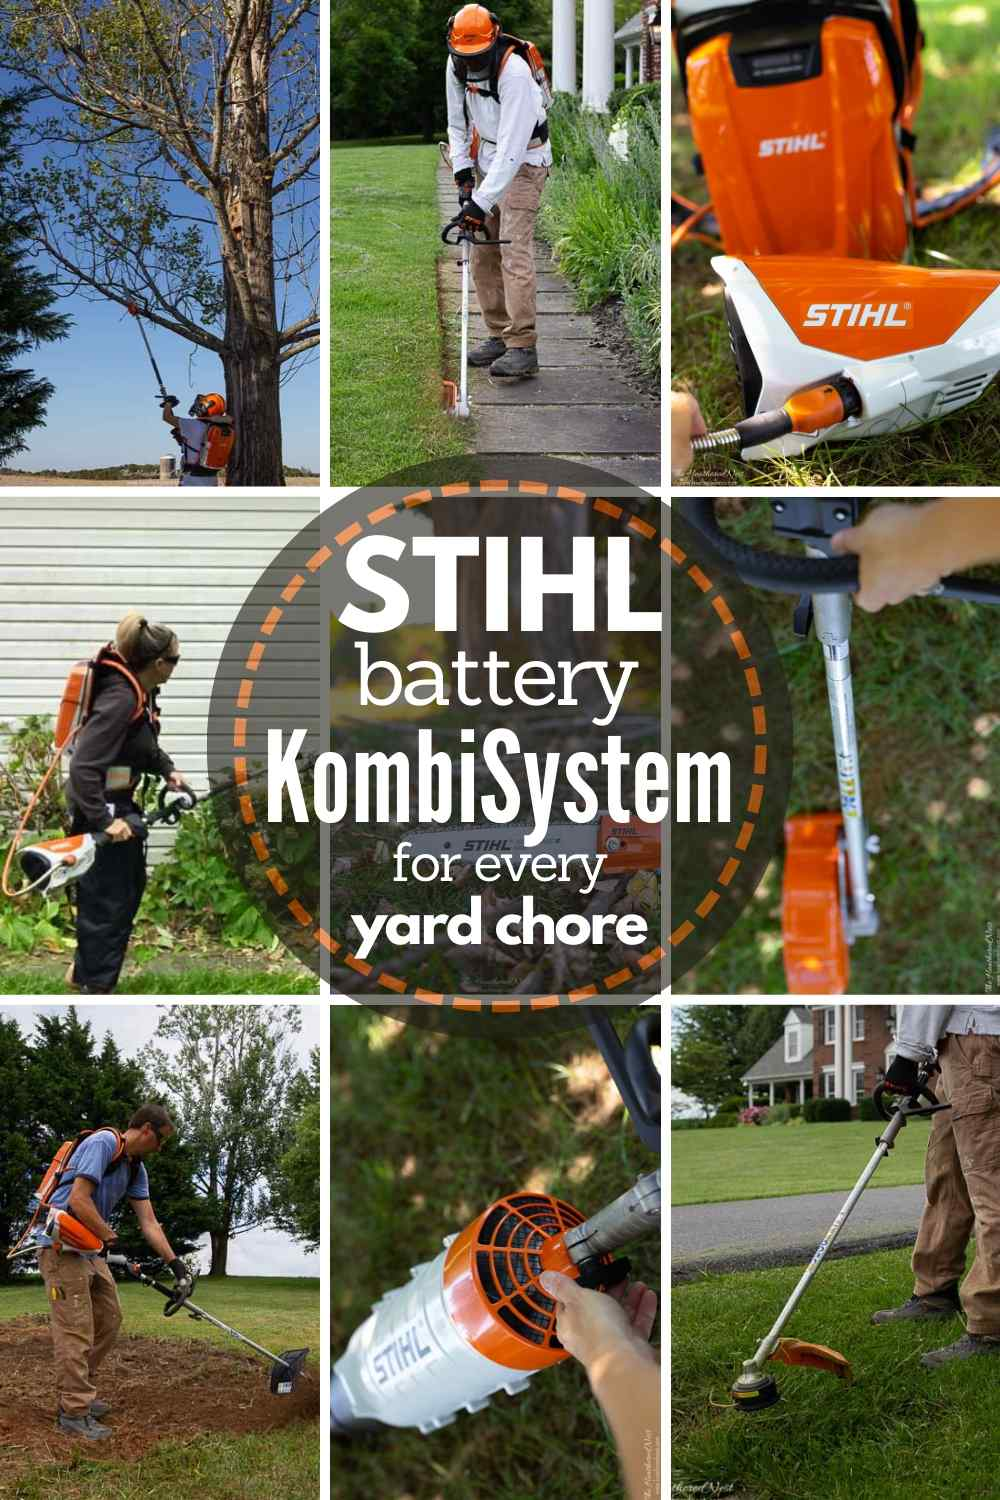 grid showing 9 different yard work chores each being done by a different STIHL battery KombiSystem attachment